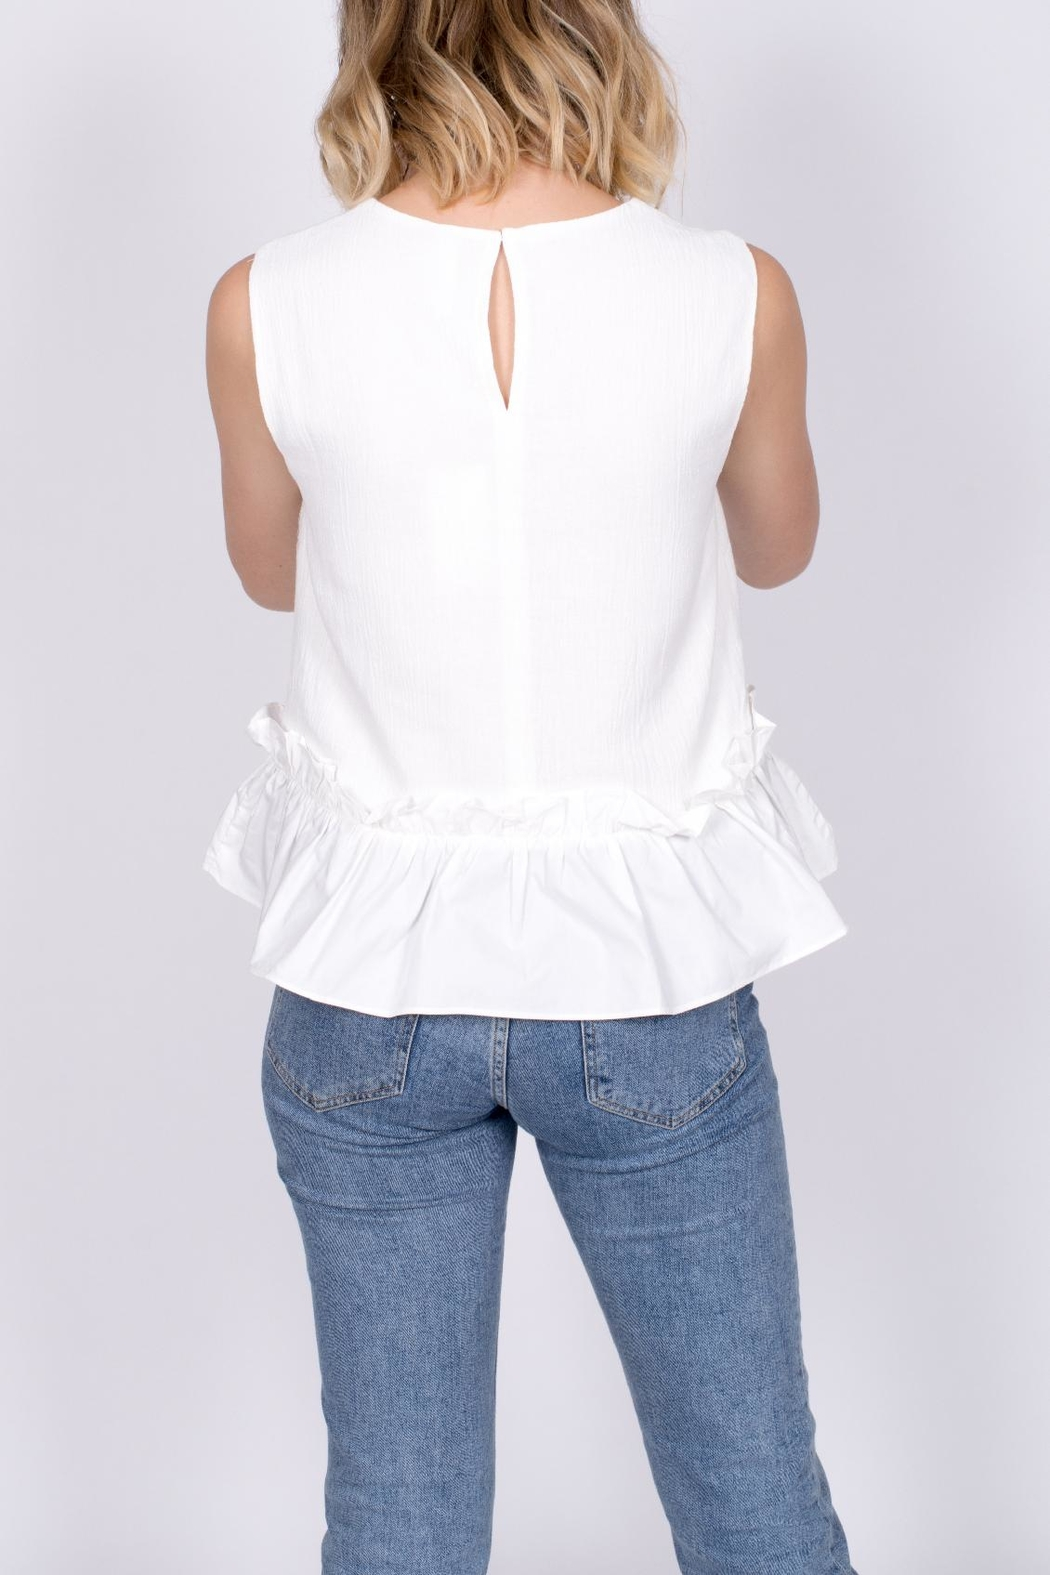 vanilla bay Ruffle Hem Top - Back Cropped Image